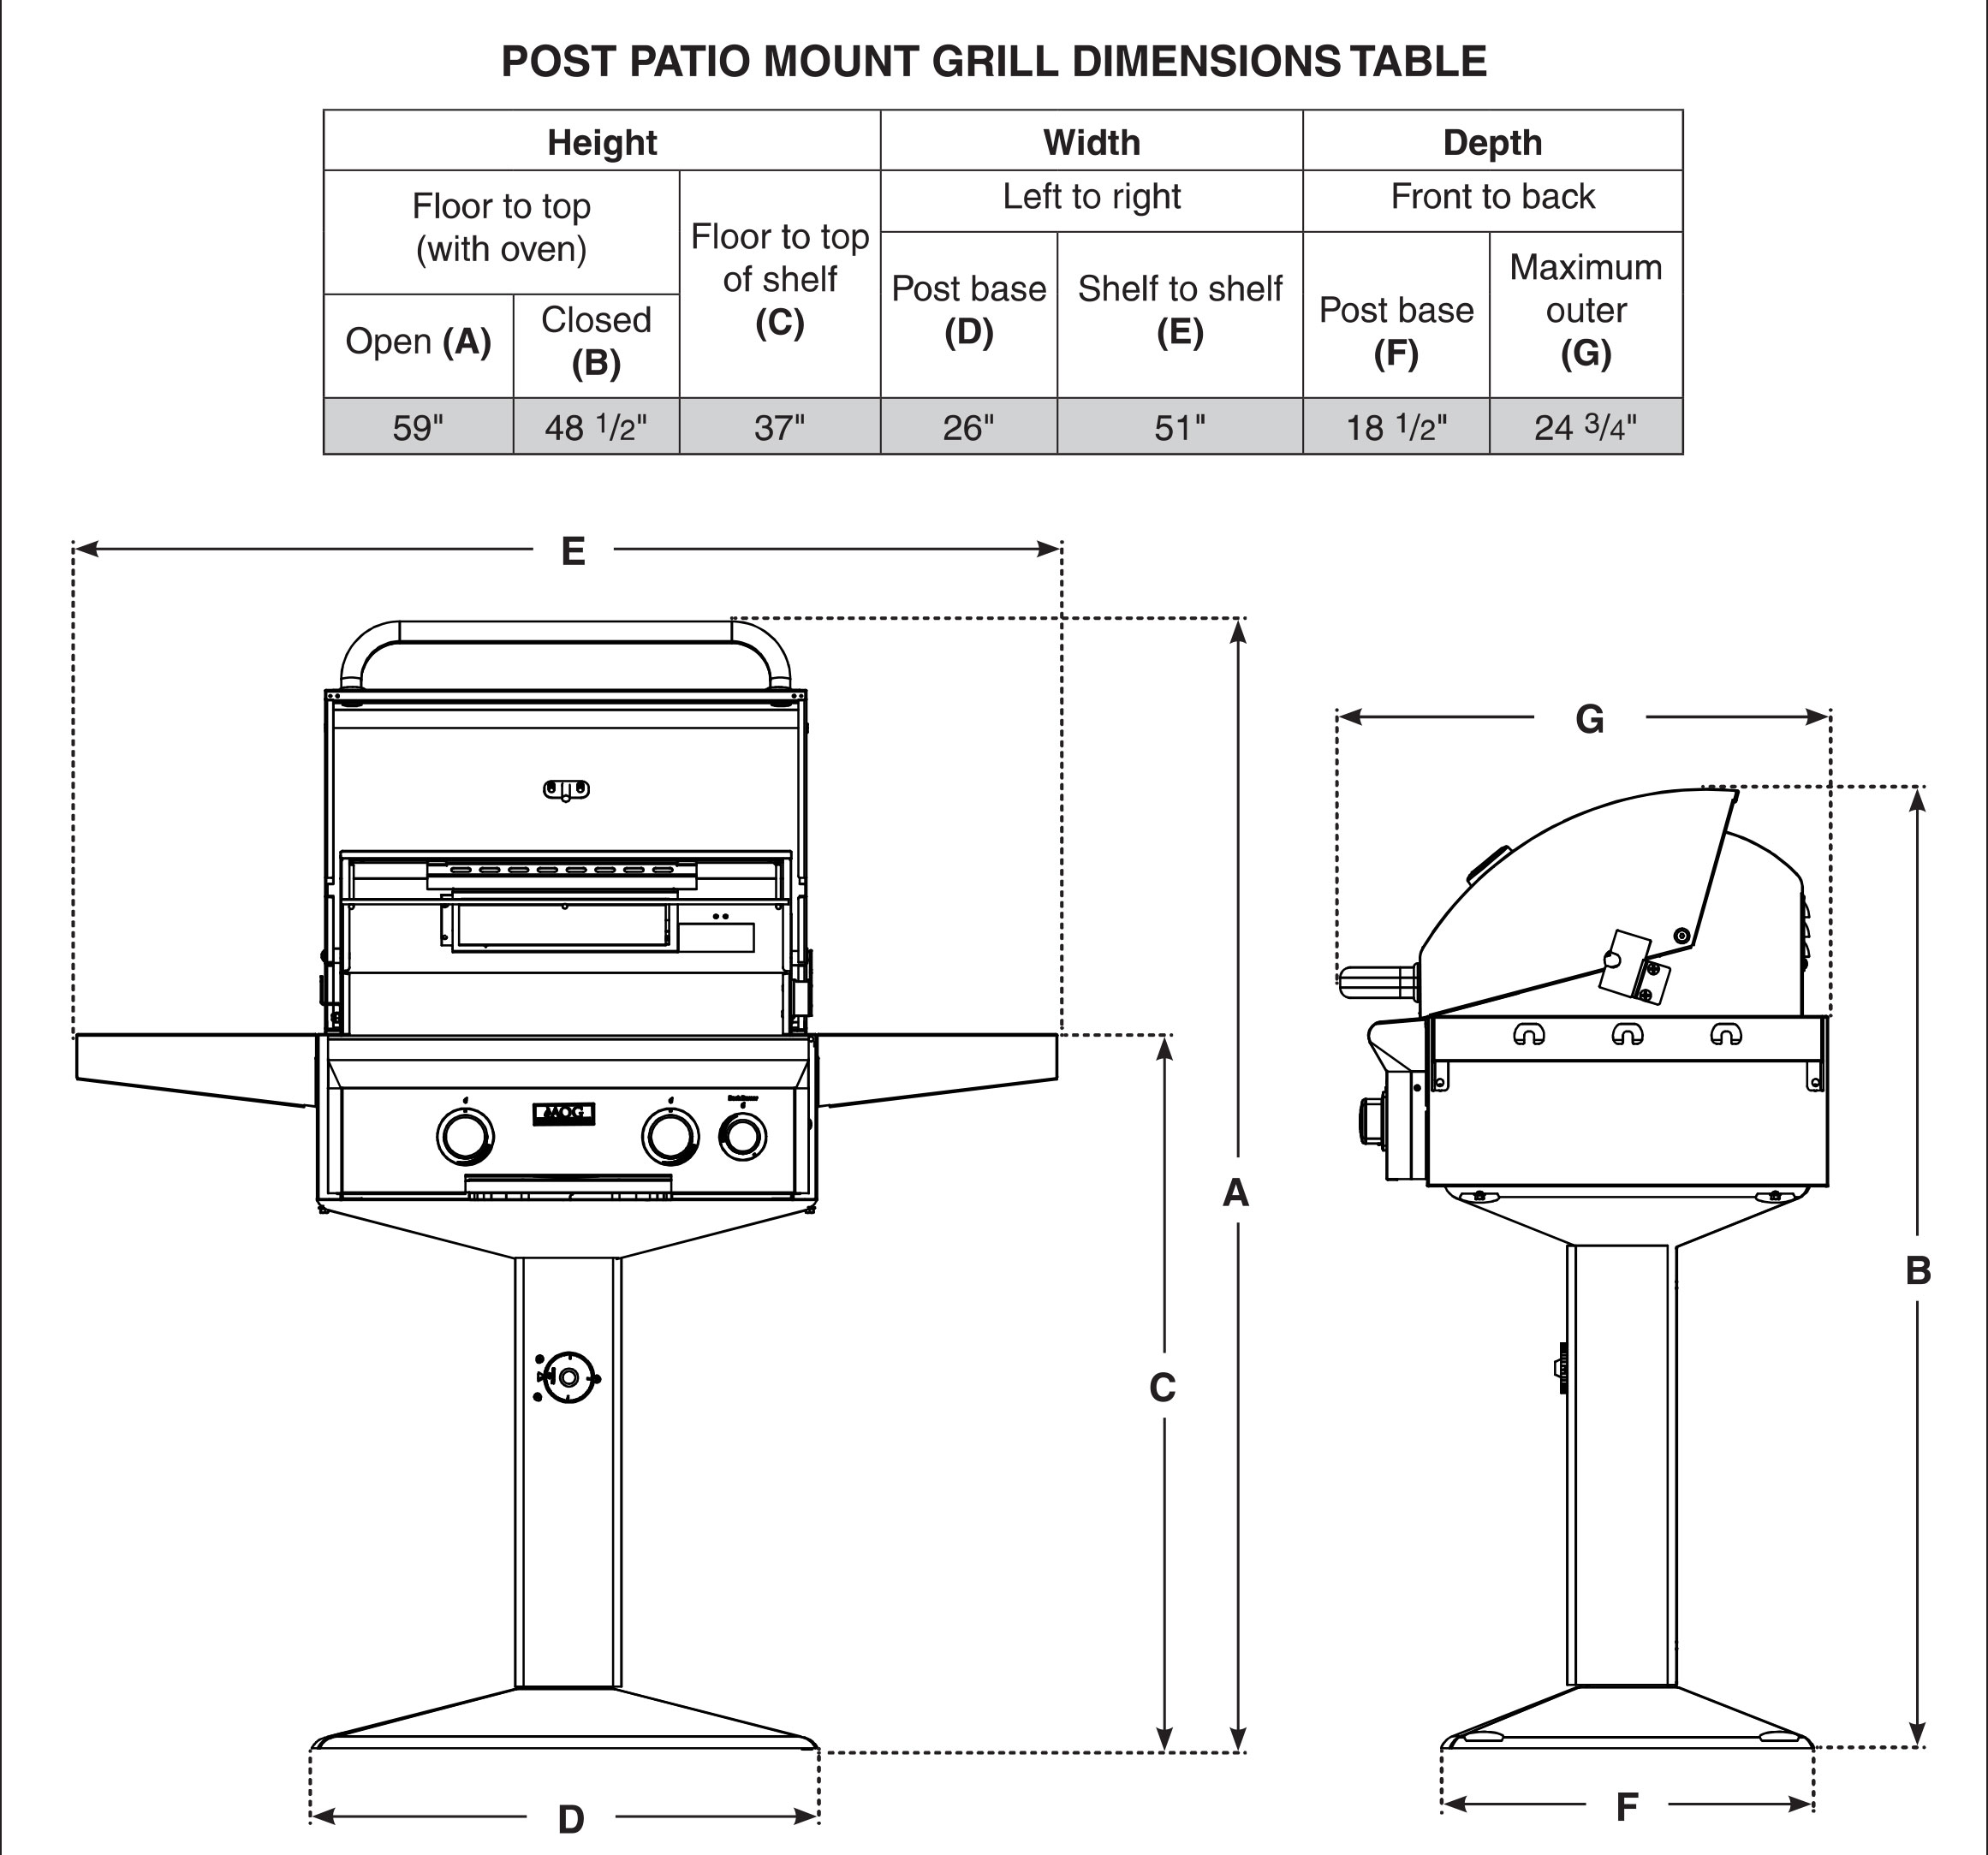 AOG T-Series 24-Inch Gas Grill On In-Ground Post